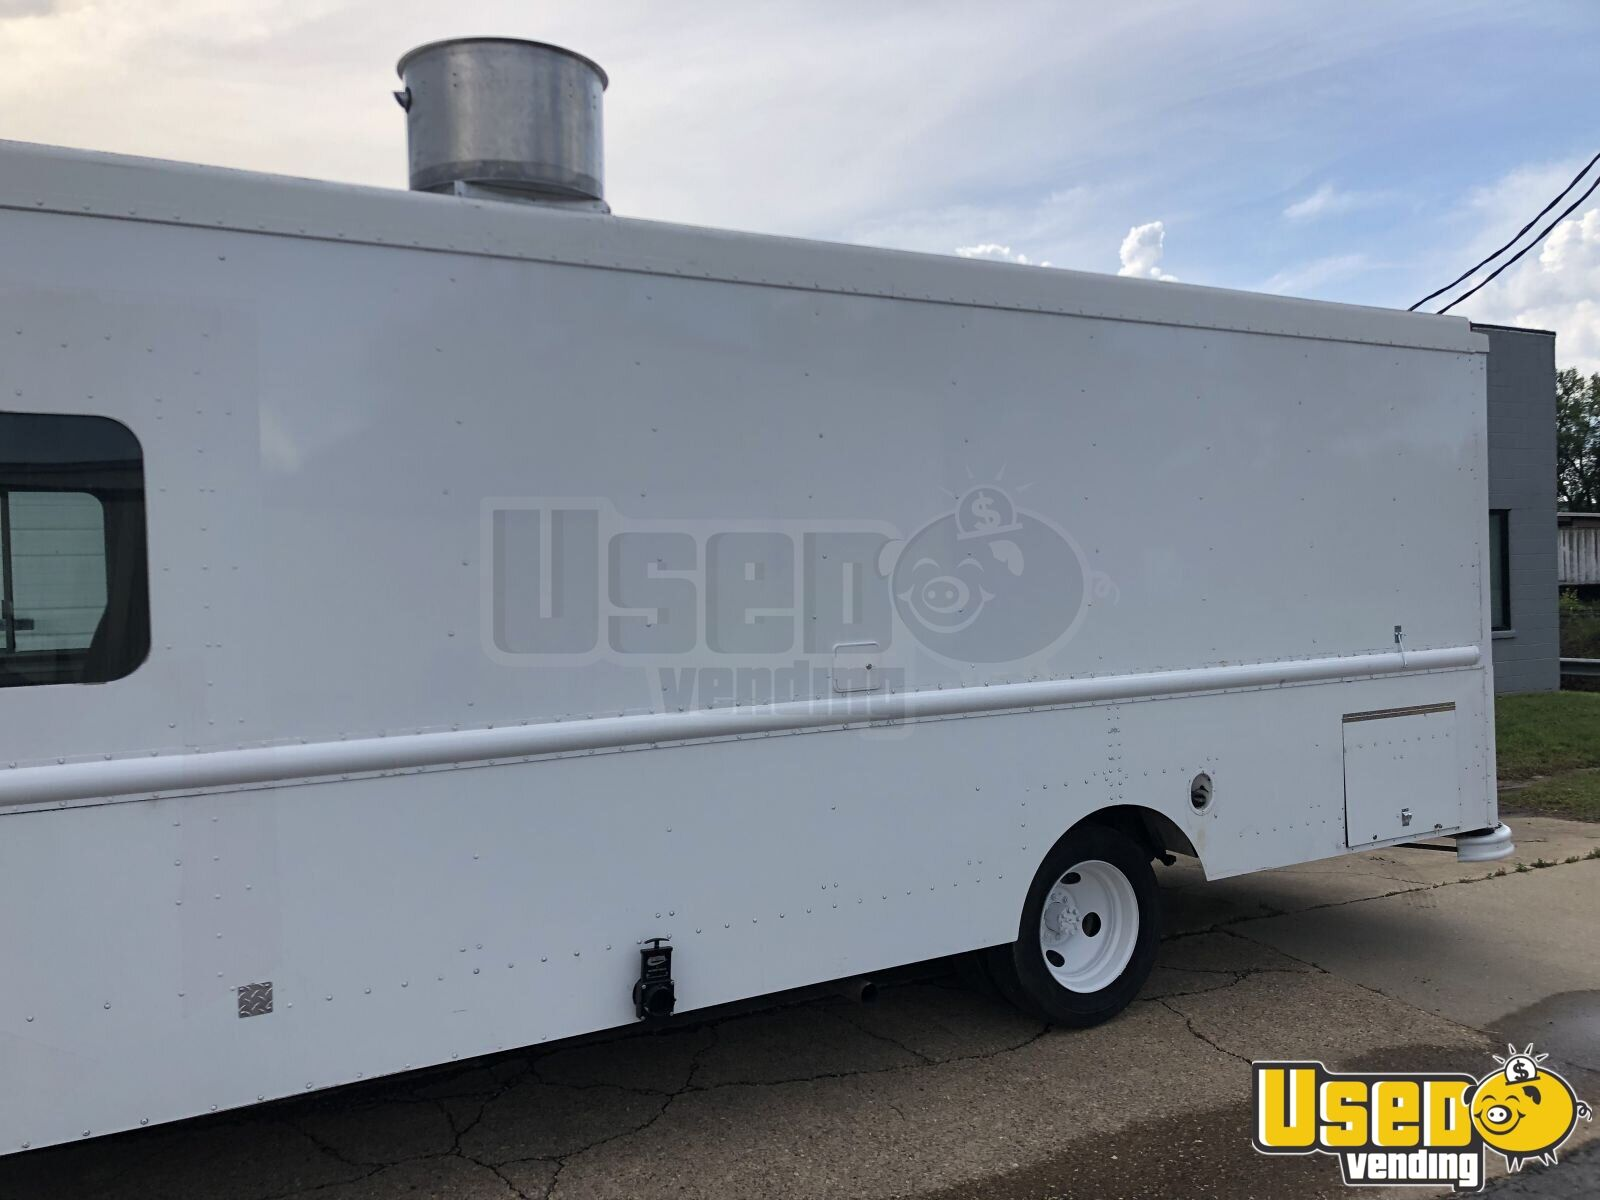 1999 Workhorse P32 All-purpose Food Truck Propane Tank Missouri Diesel Engine for Sale - 6